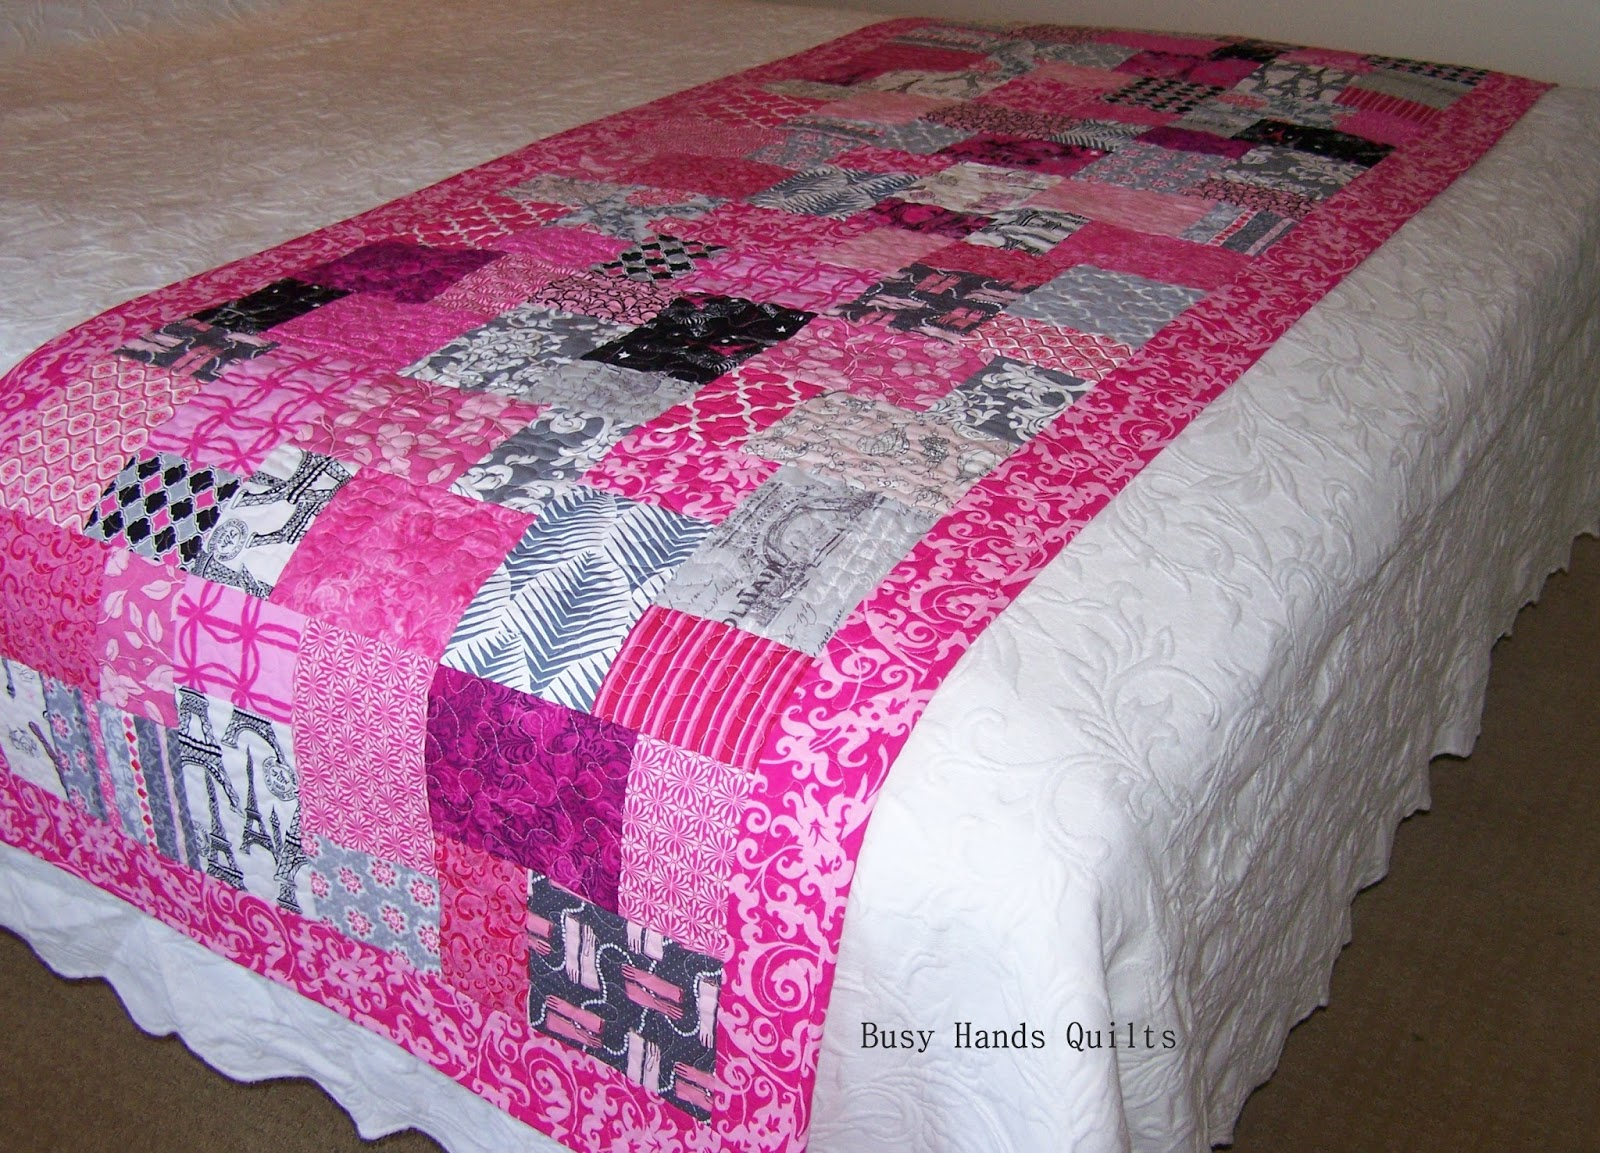 Busy Hands Quilts Custom Paris France Eiffel Tower Themed